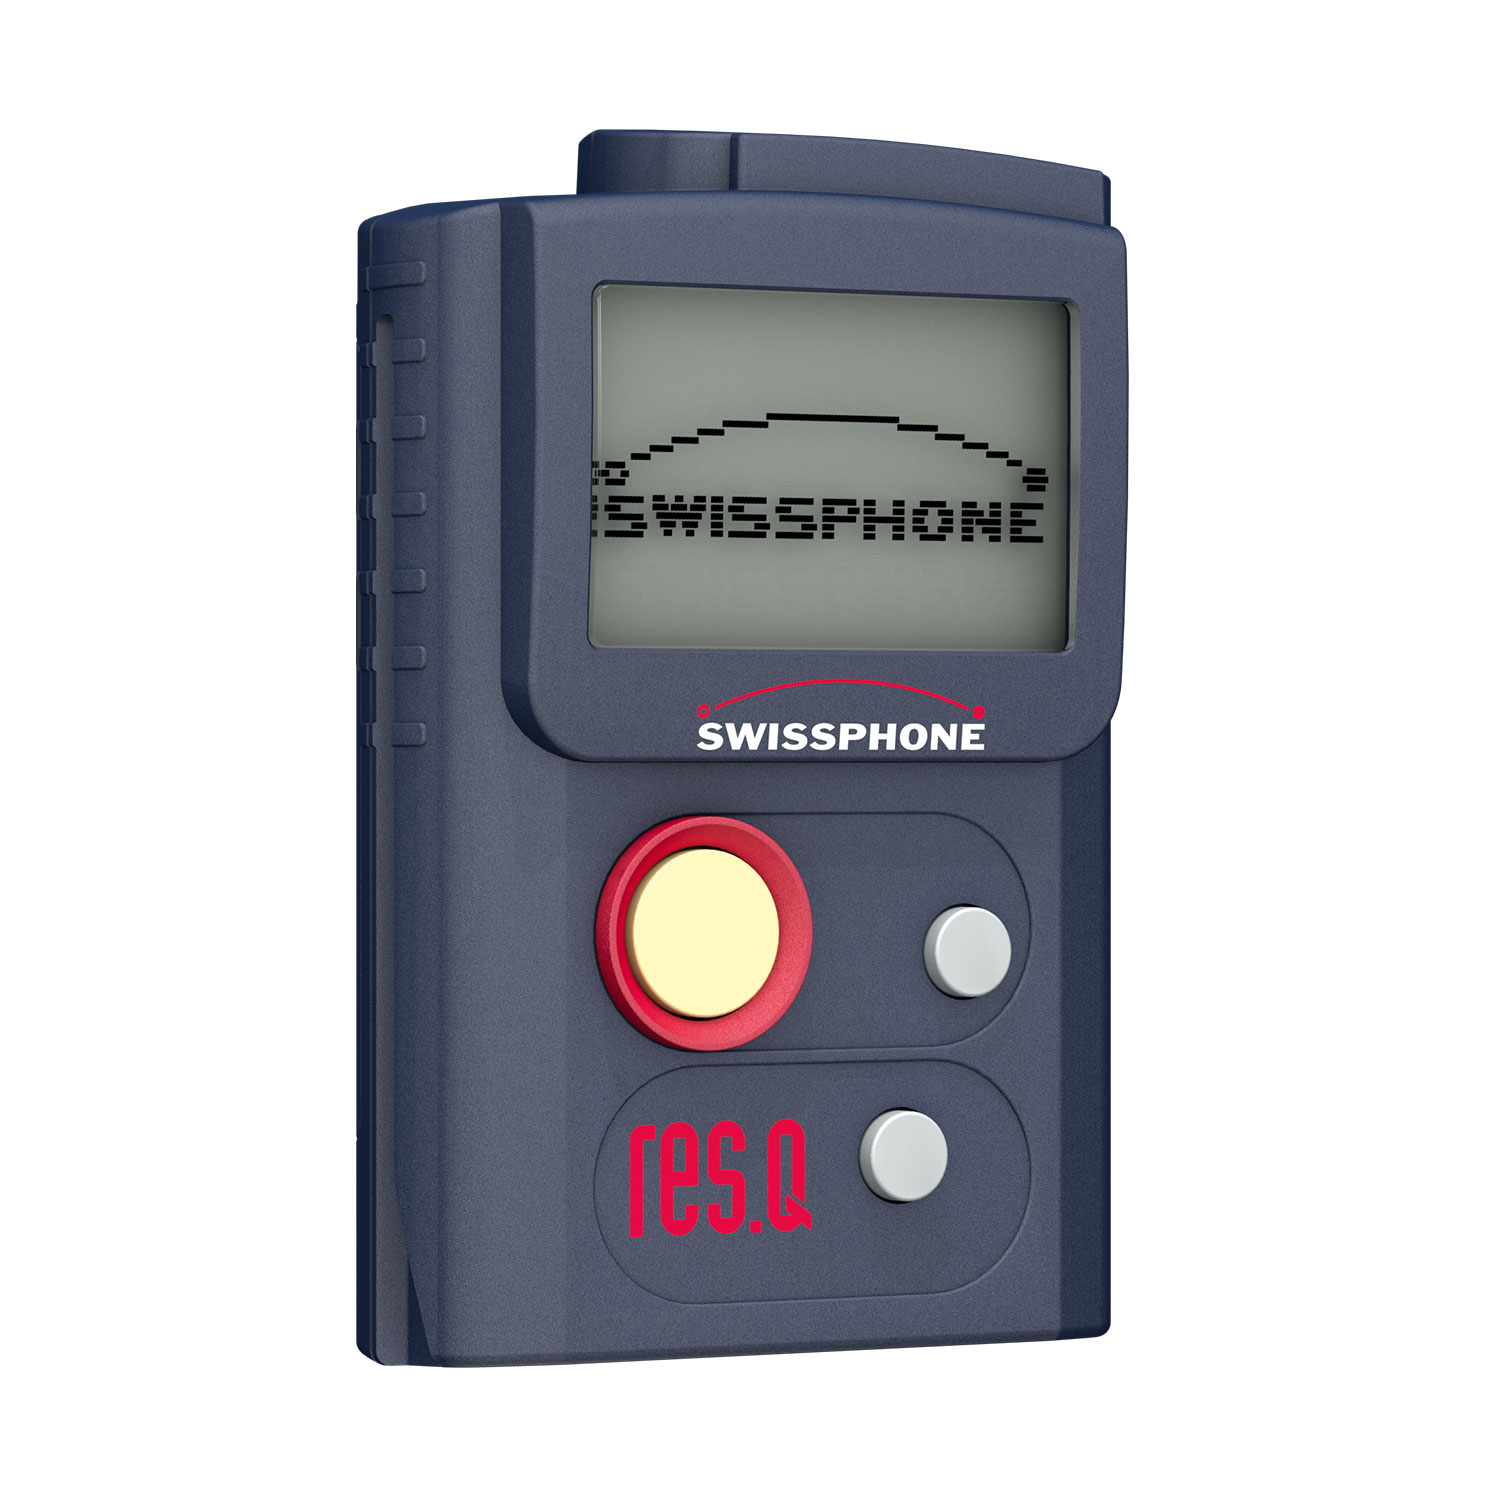 Swissphone Alerting Pager RESQ